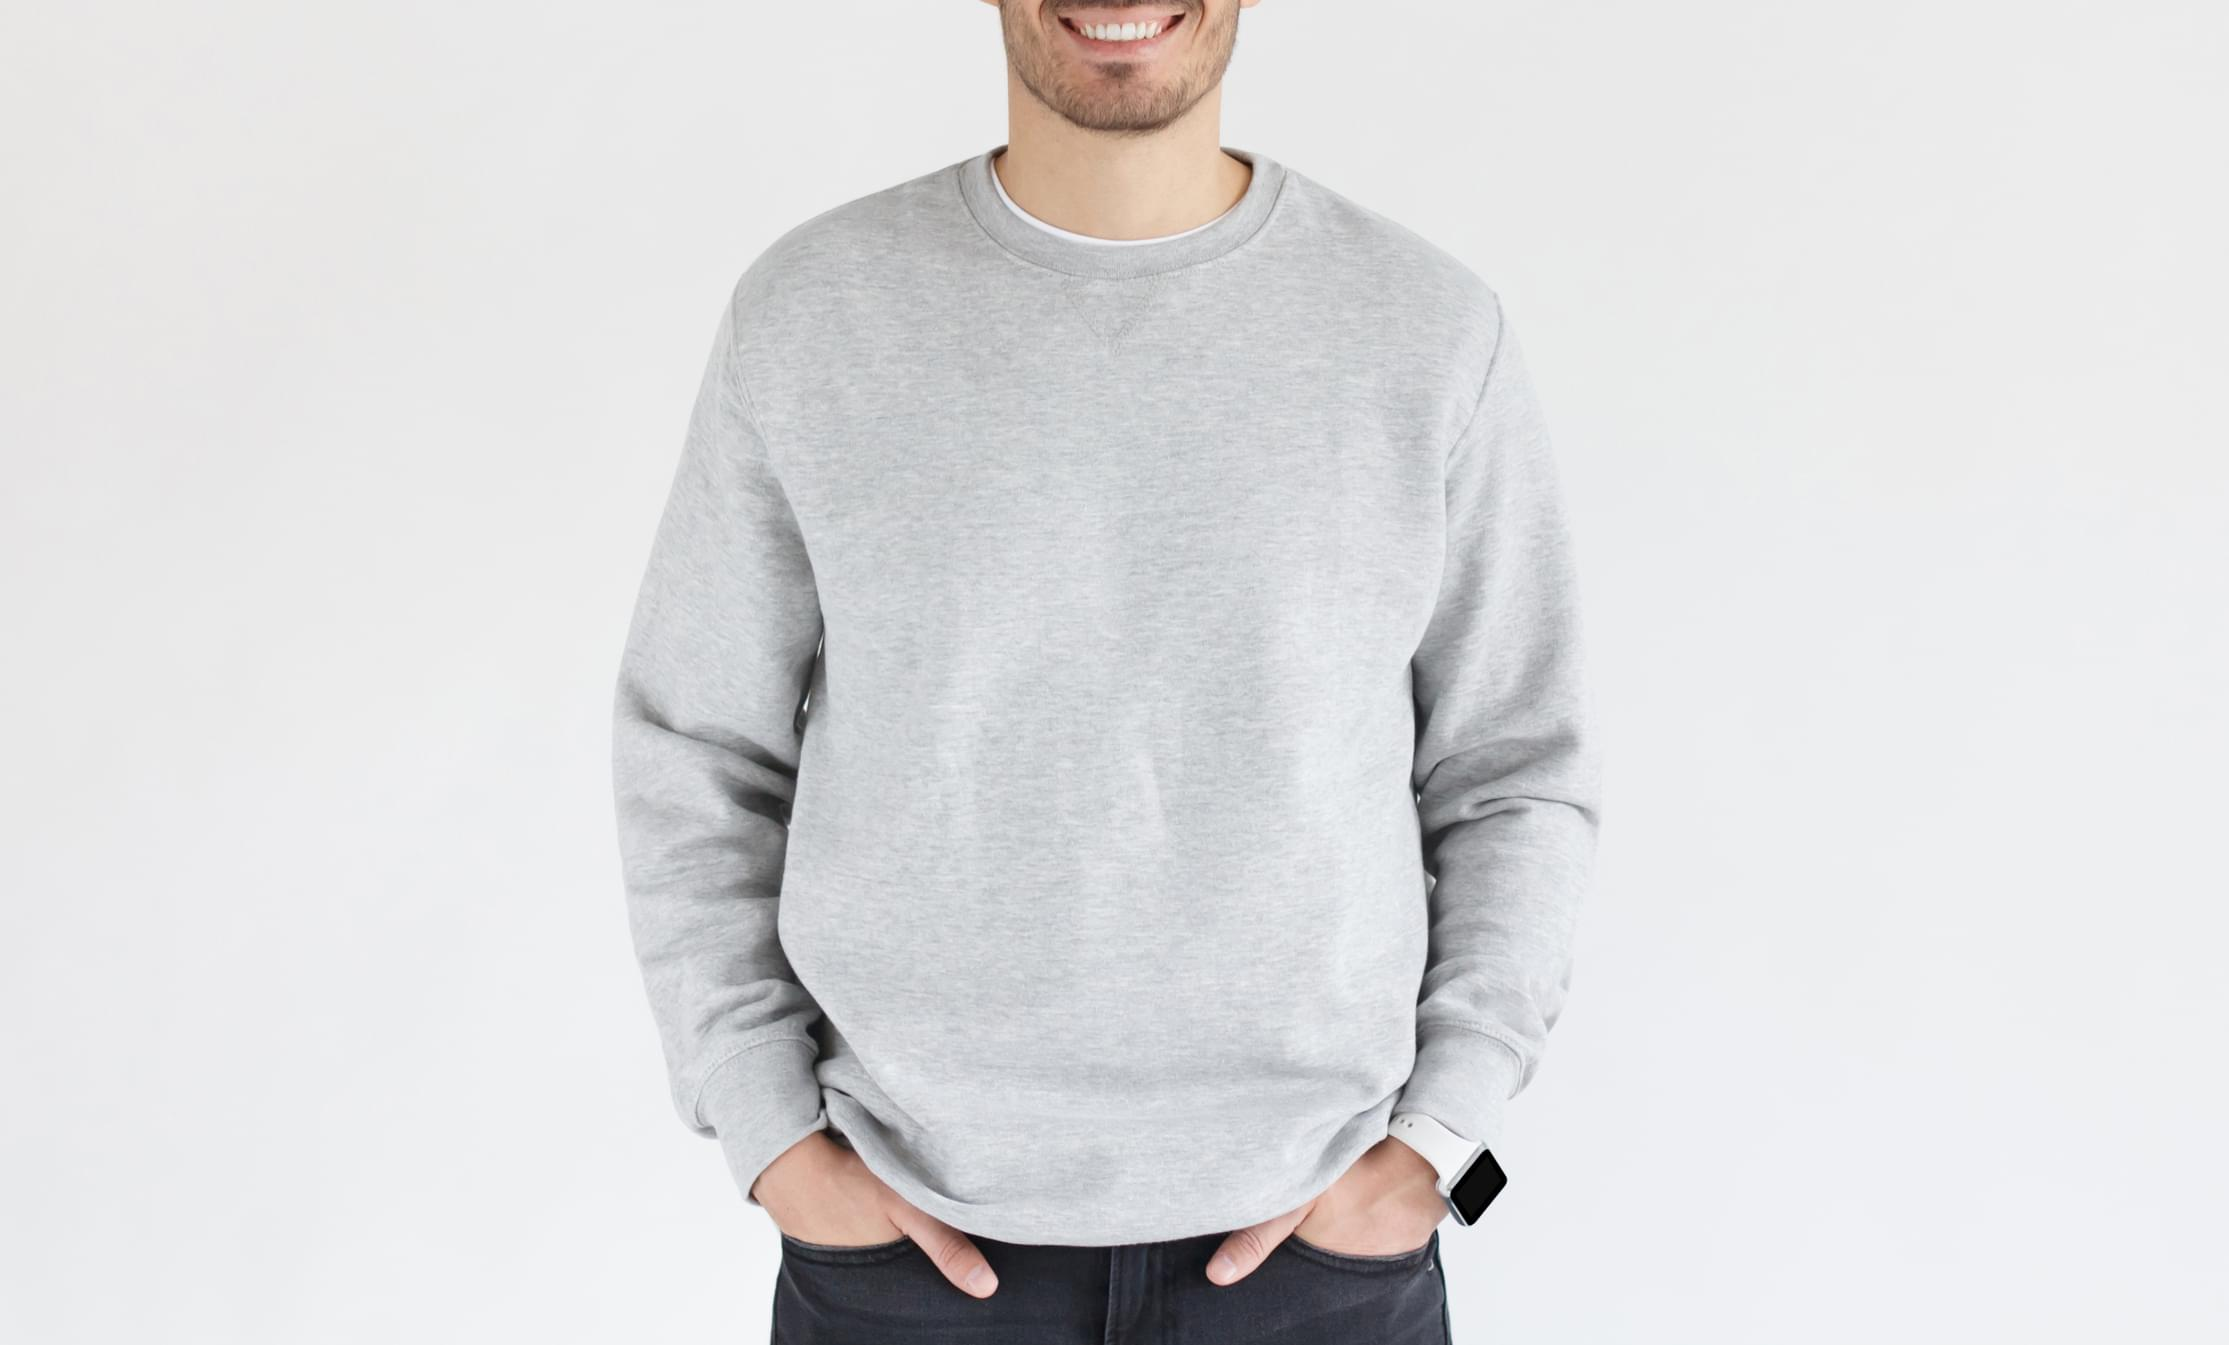 Mock up of young man in gray sweatshirt, standing isolated on background. No face photo